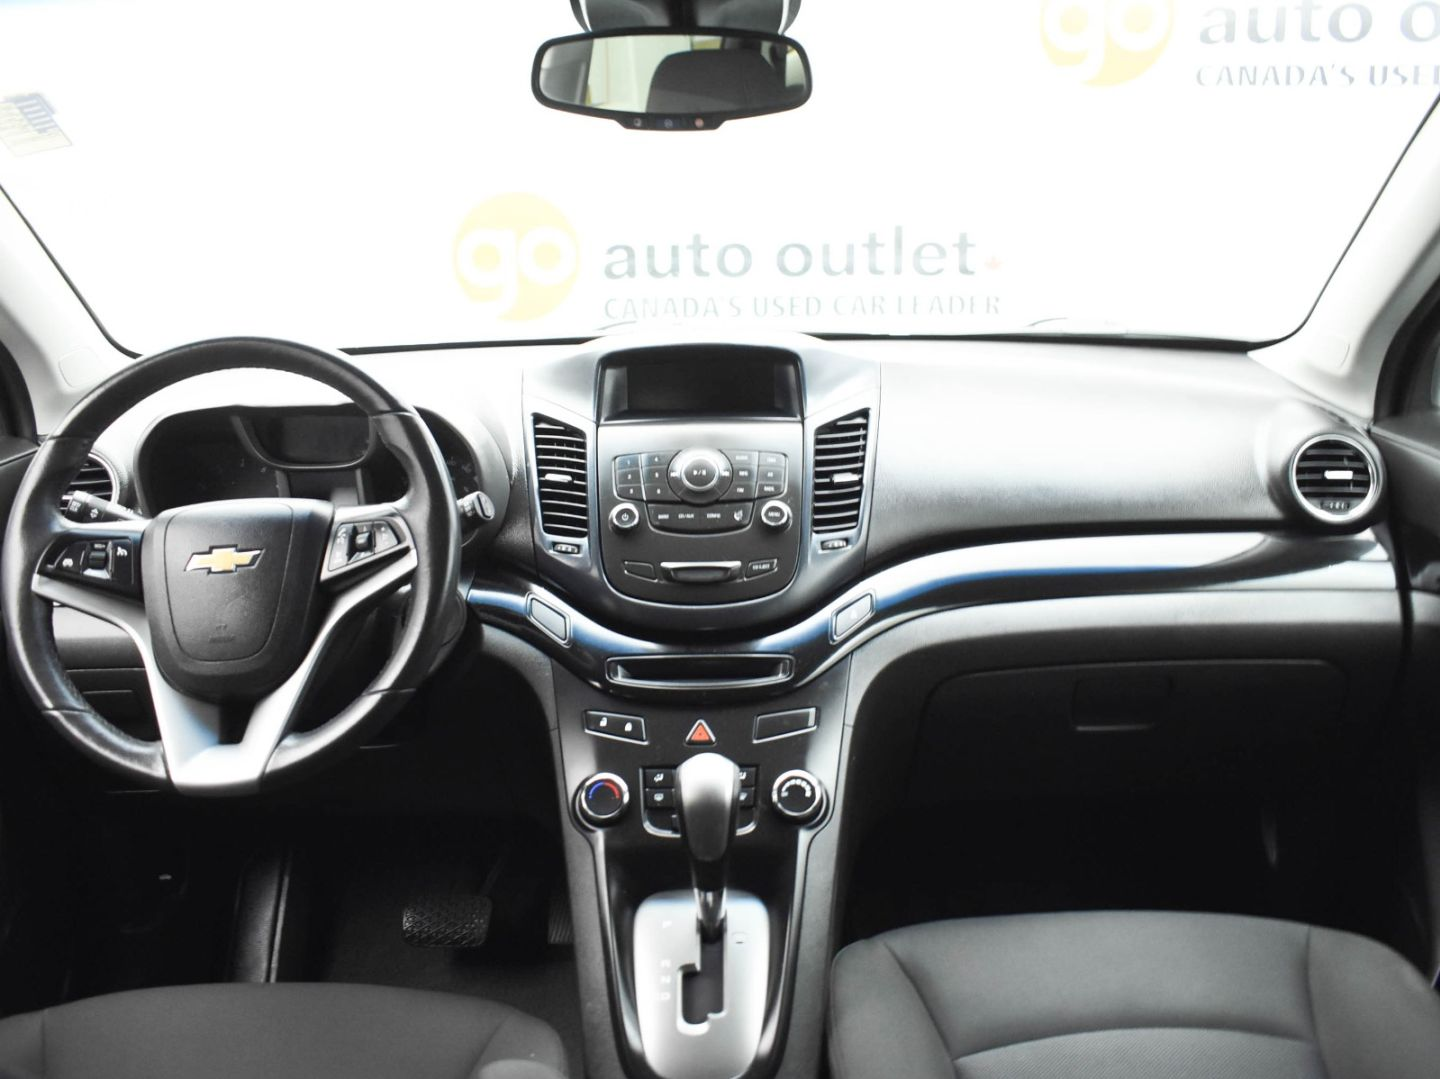 2013 Chevrolet Orlando LT for sale in Leduc, Alberta